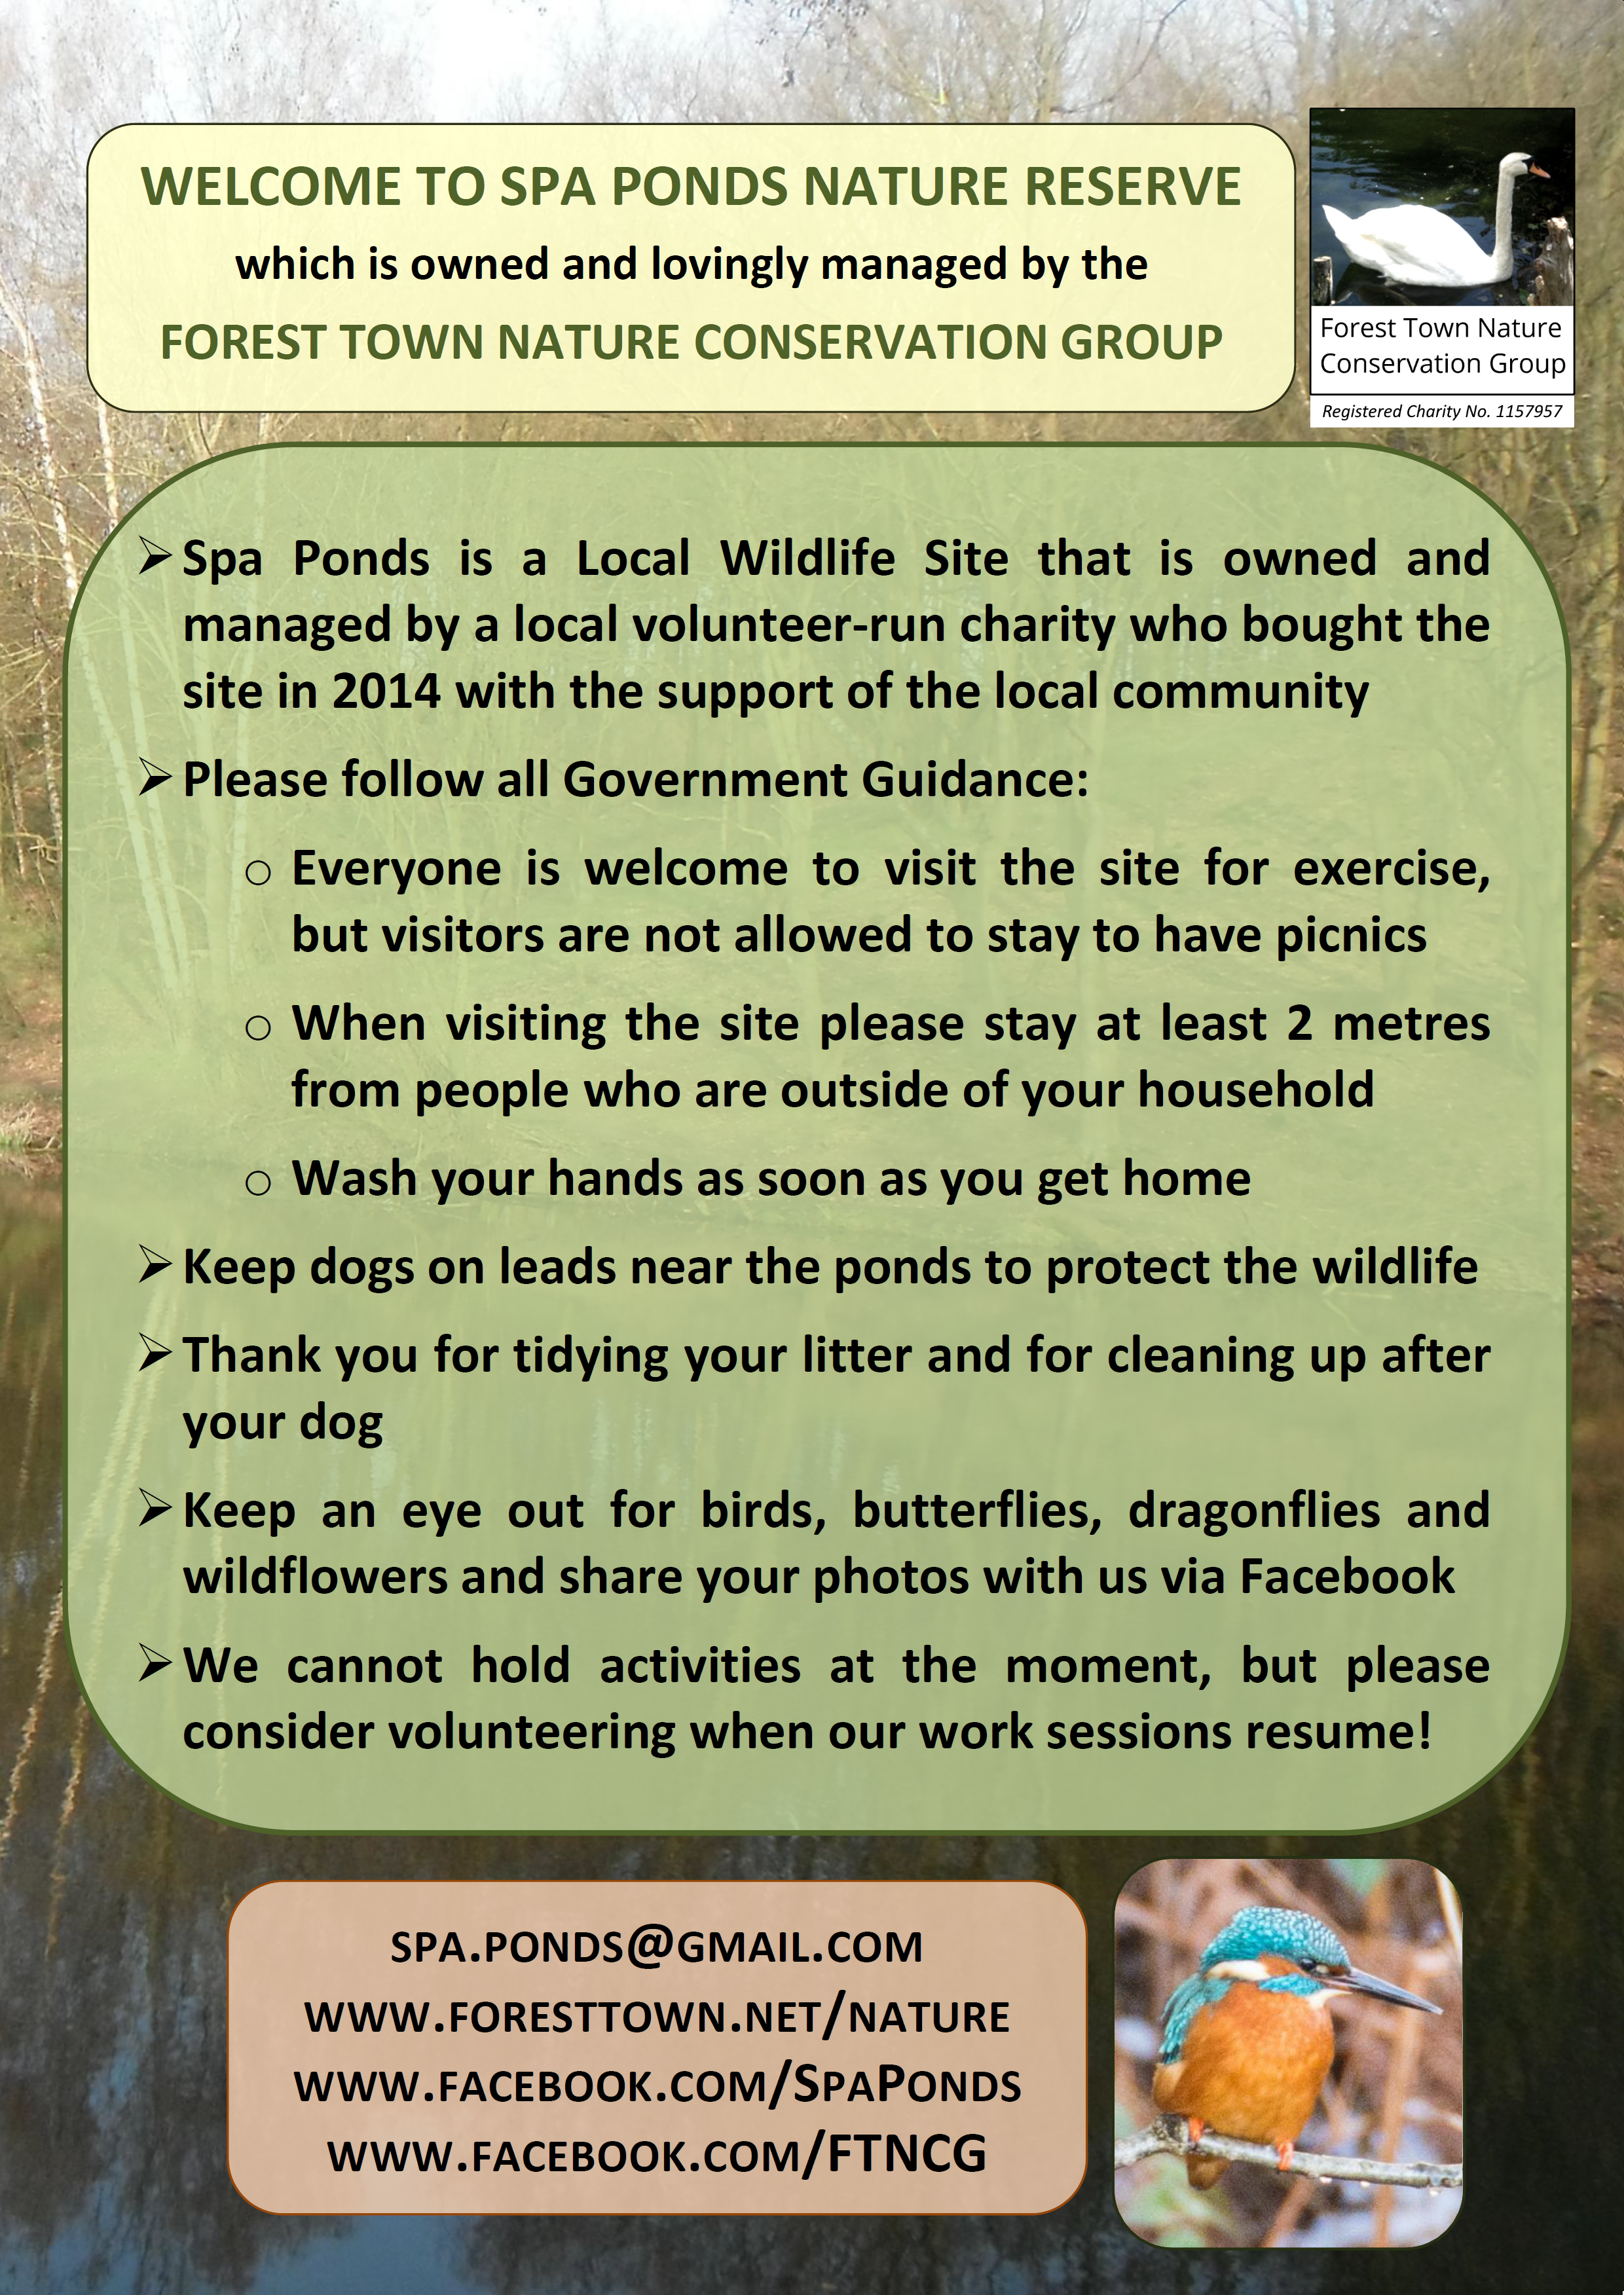 Please follow Government guidelines when visiting Spa Ponds. This is a wildlife site, so please tidy up your litter and keep your dogs on their leads near the ponds.